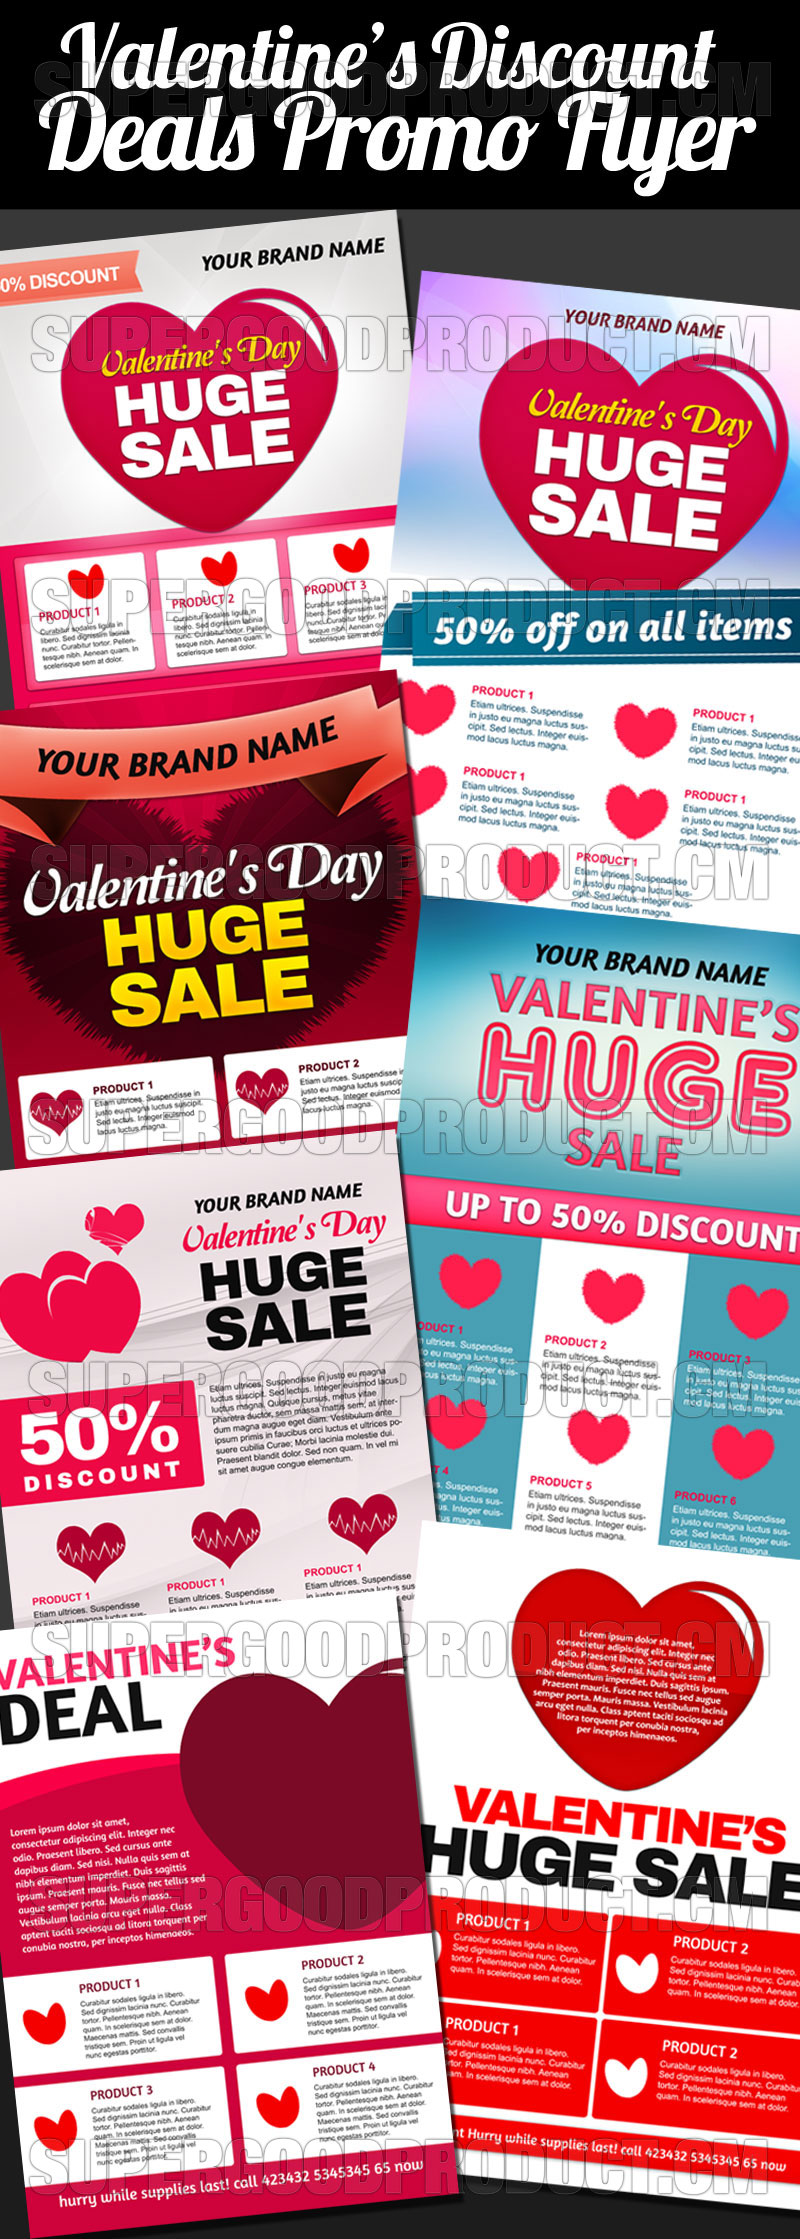 Valentines-Discount-Deals-Promo-Flyer